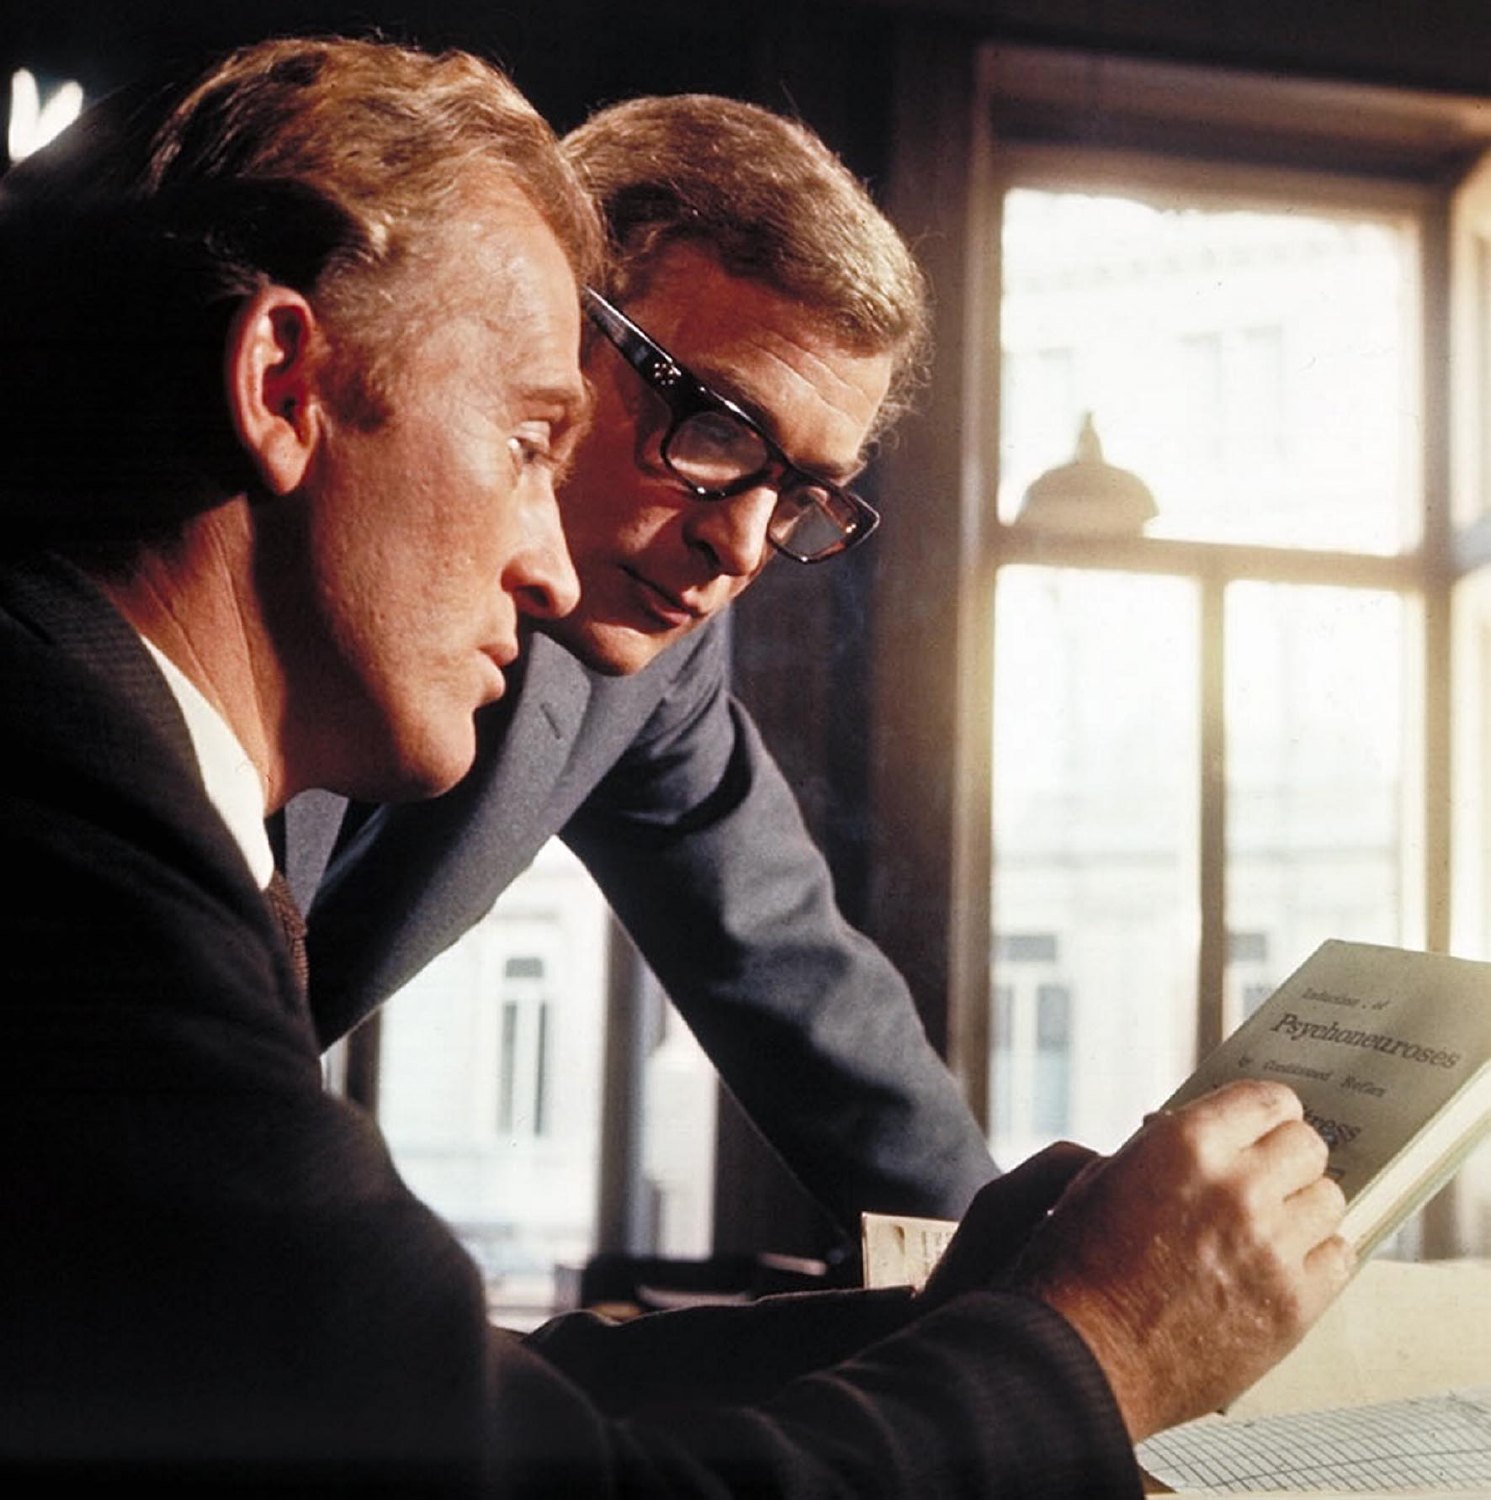 Palmer-and-colleague-discover-the-meaning-of-IPCRESS.jpg